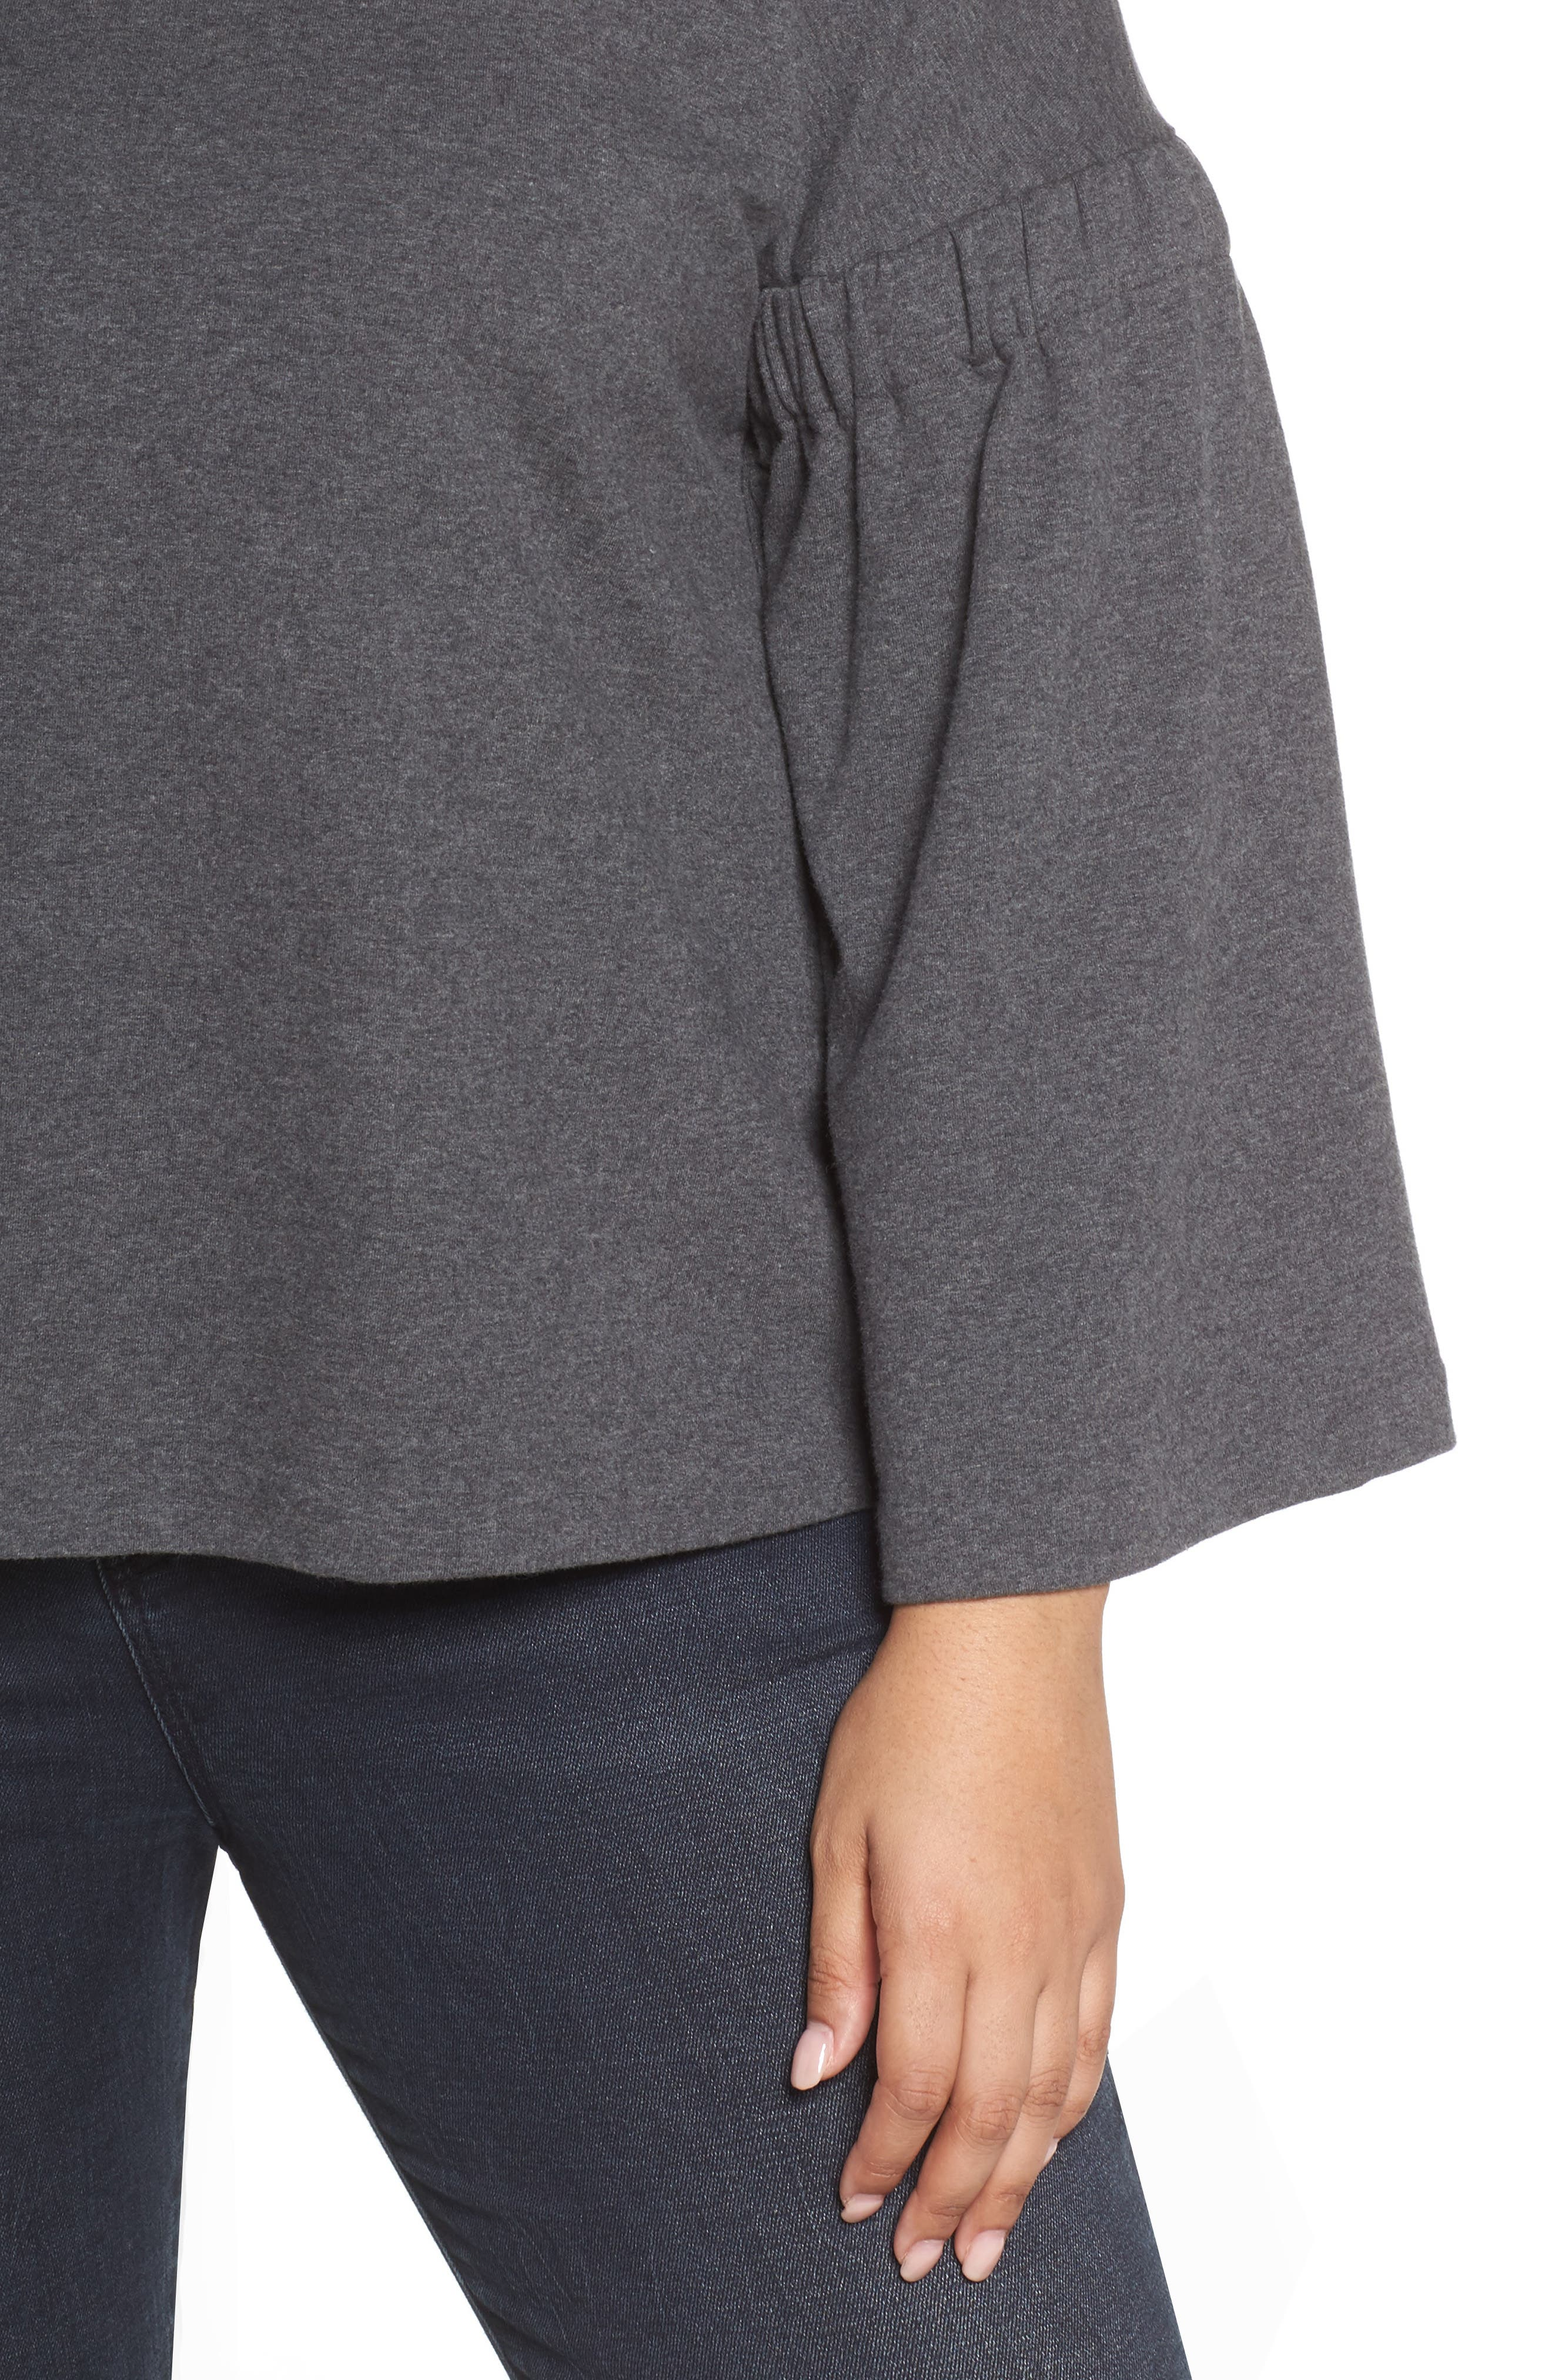 Bell Sleeve Top,                             Alternate thumbnail 4, color,                             023